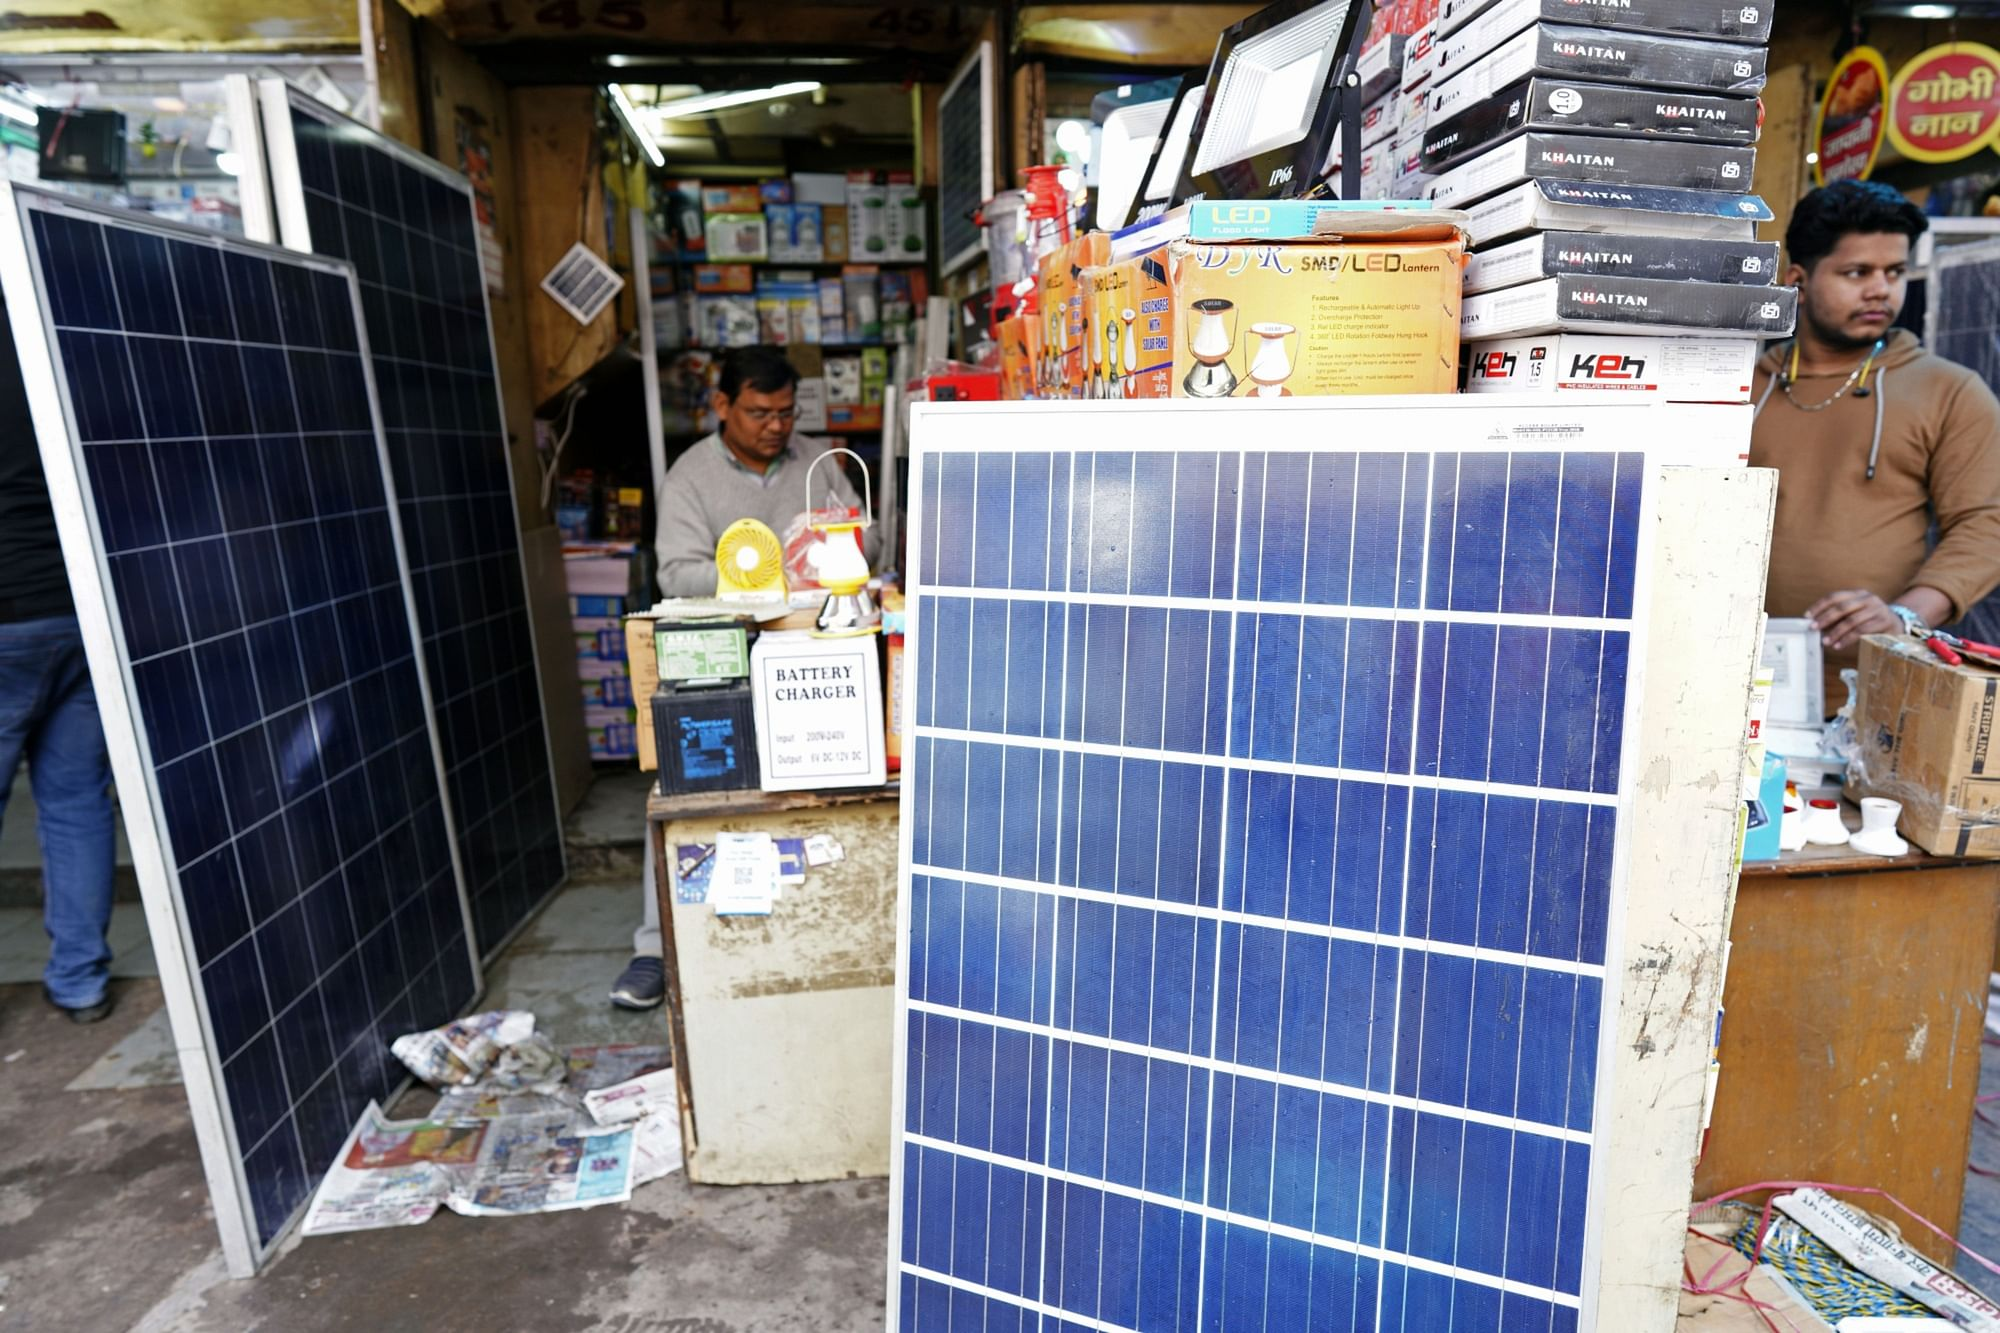 Solar panels sit on display inside an electronics shop at Chandni Chowk market in New Delhi, on Feb. 2, 2020. (Photographer: Ruhani Kaur/Bloomberg)